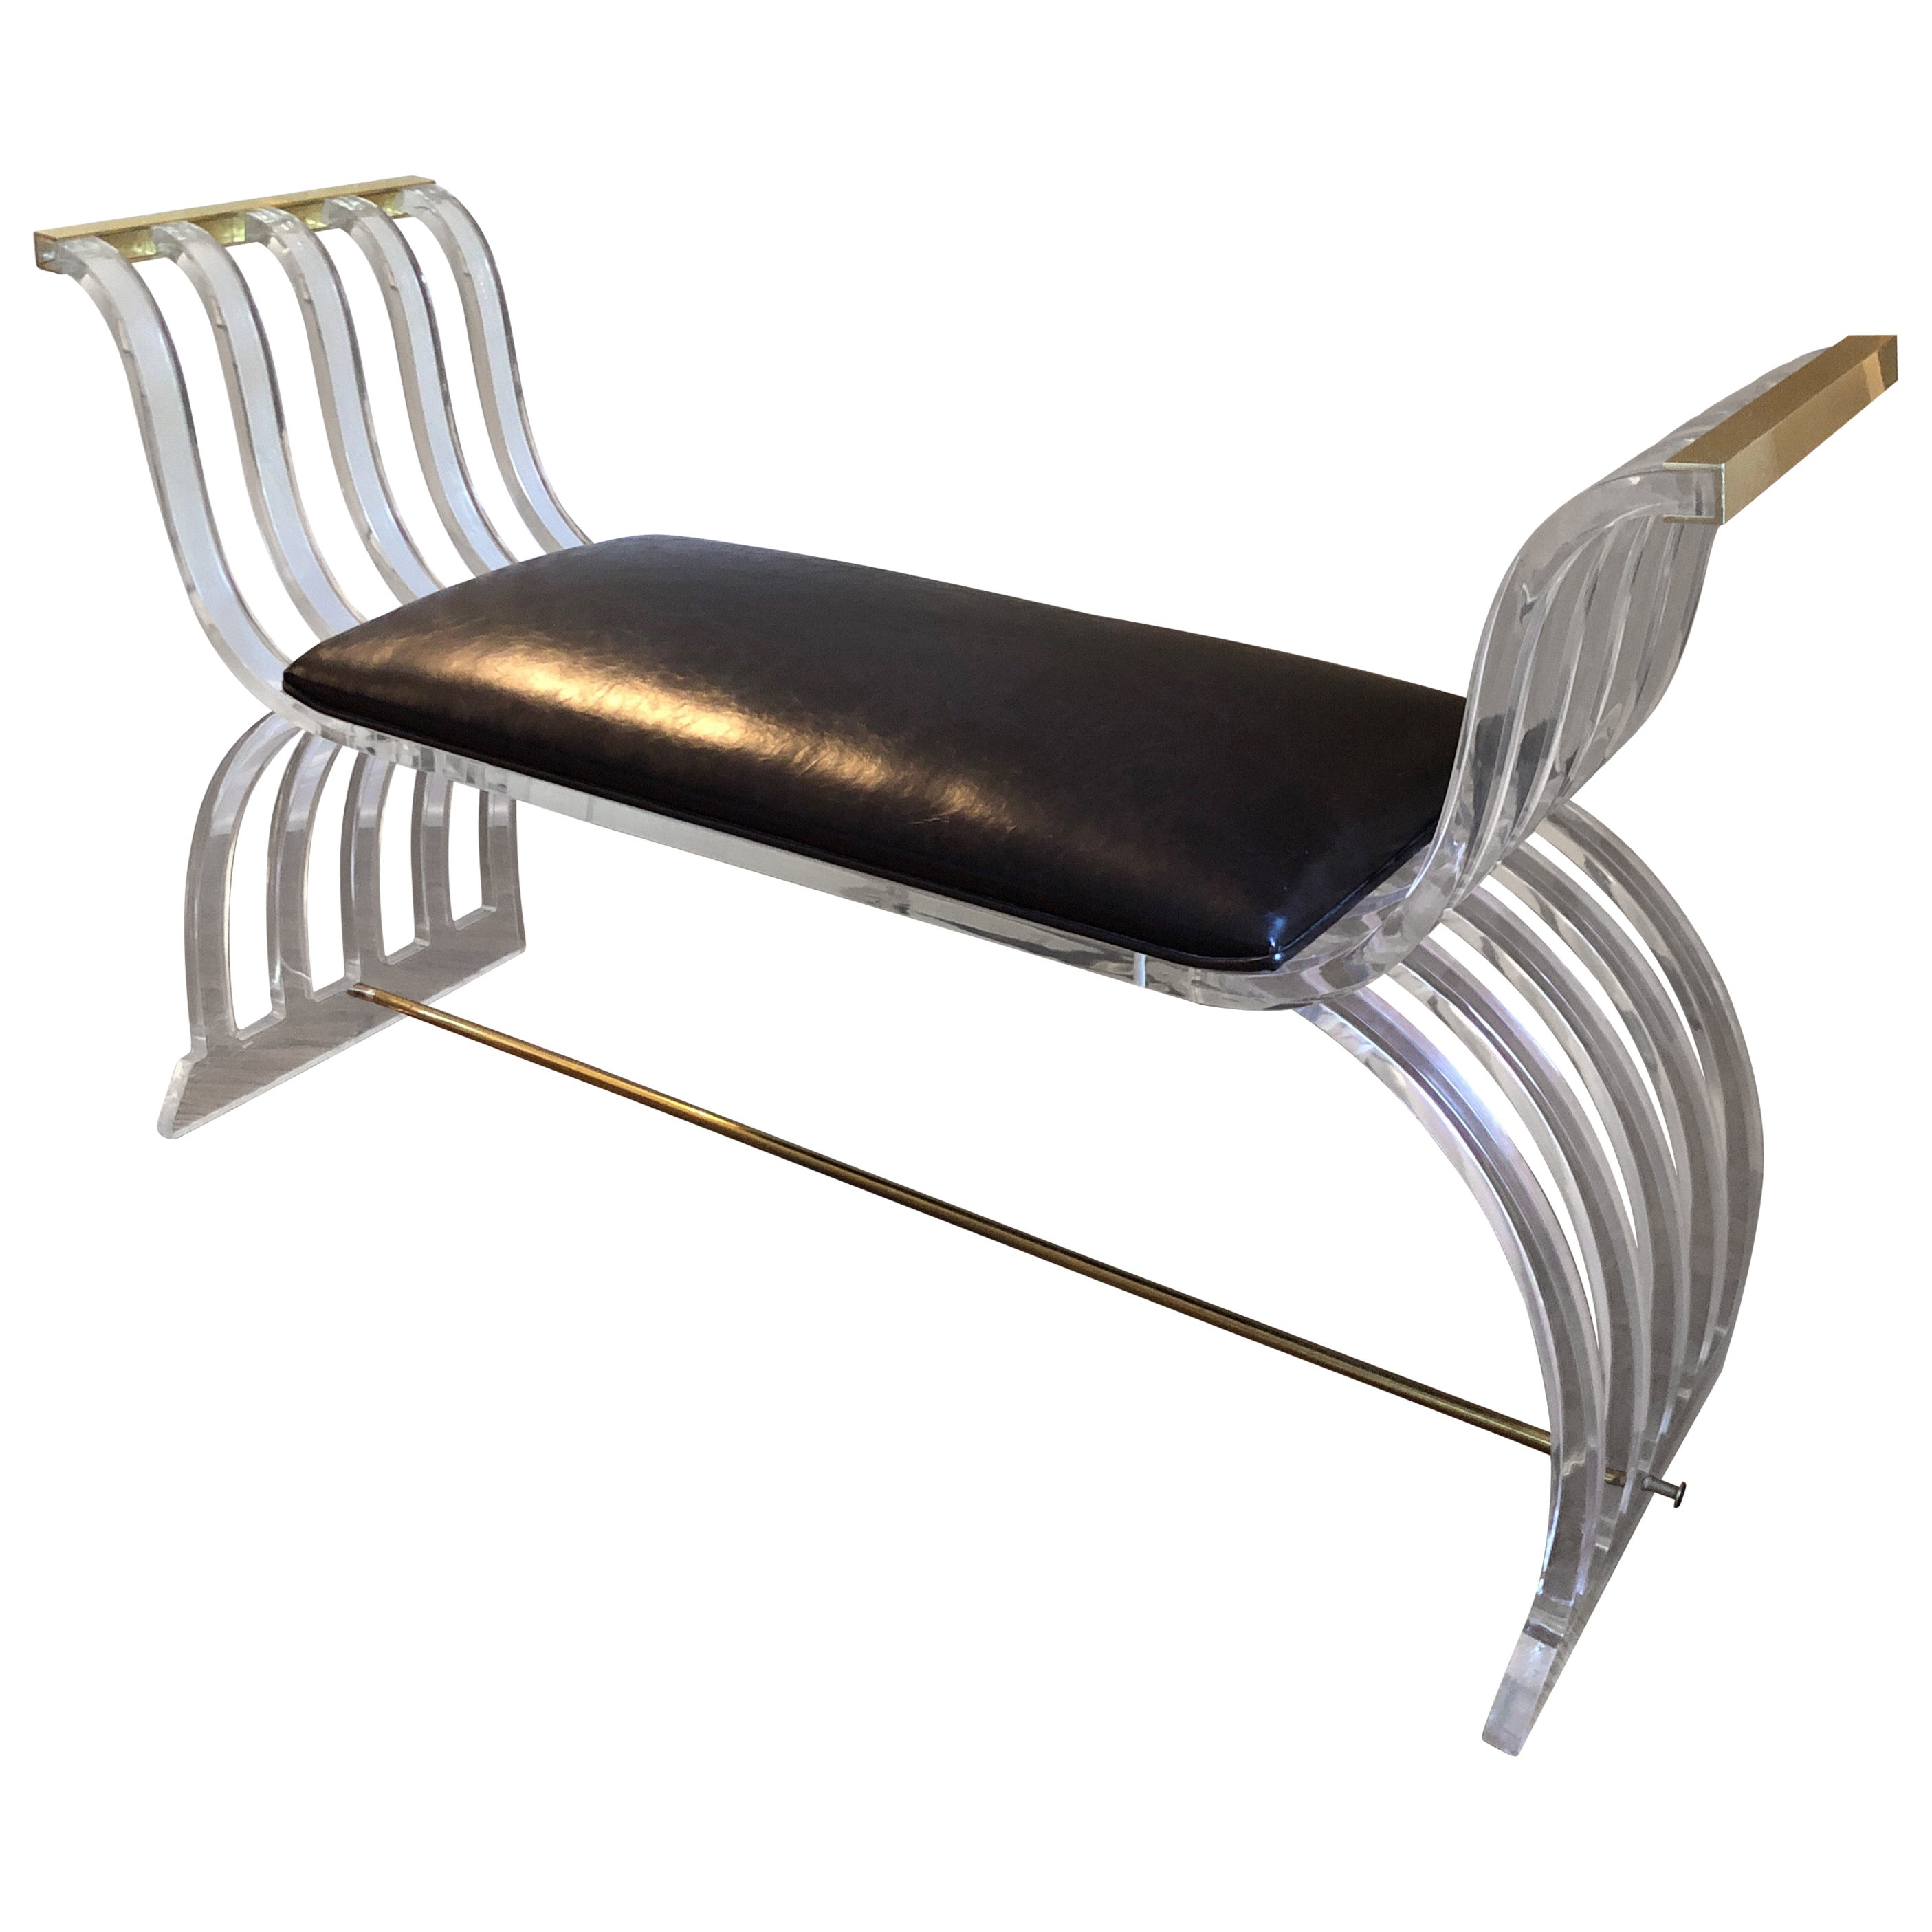 Vintage Mid-Century Modern Lucite and Leather Bench